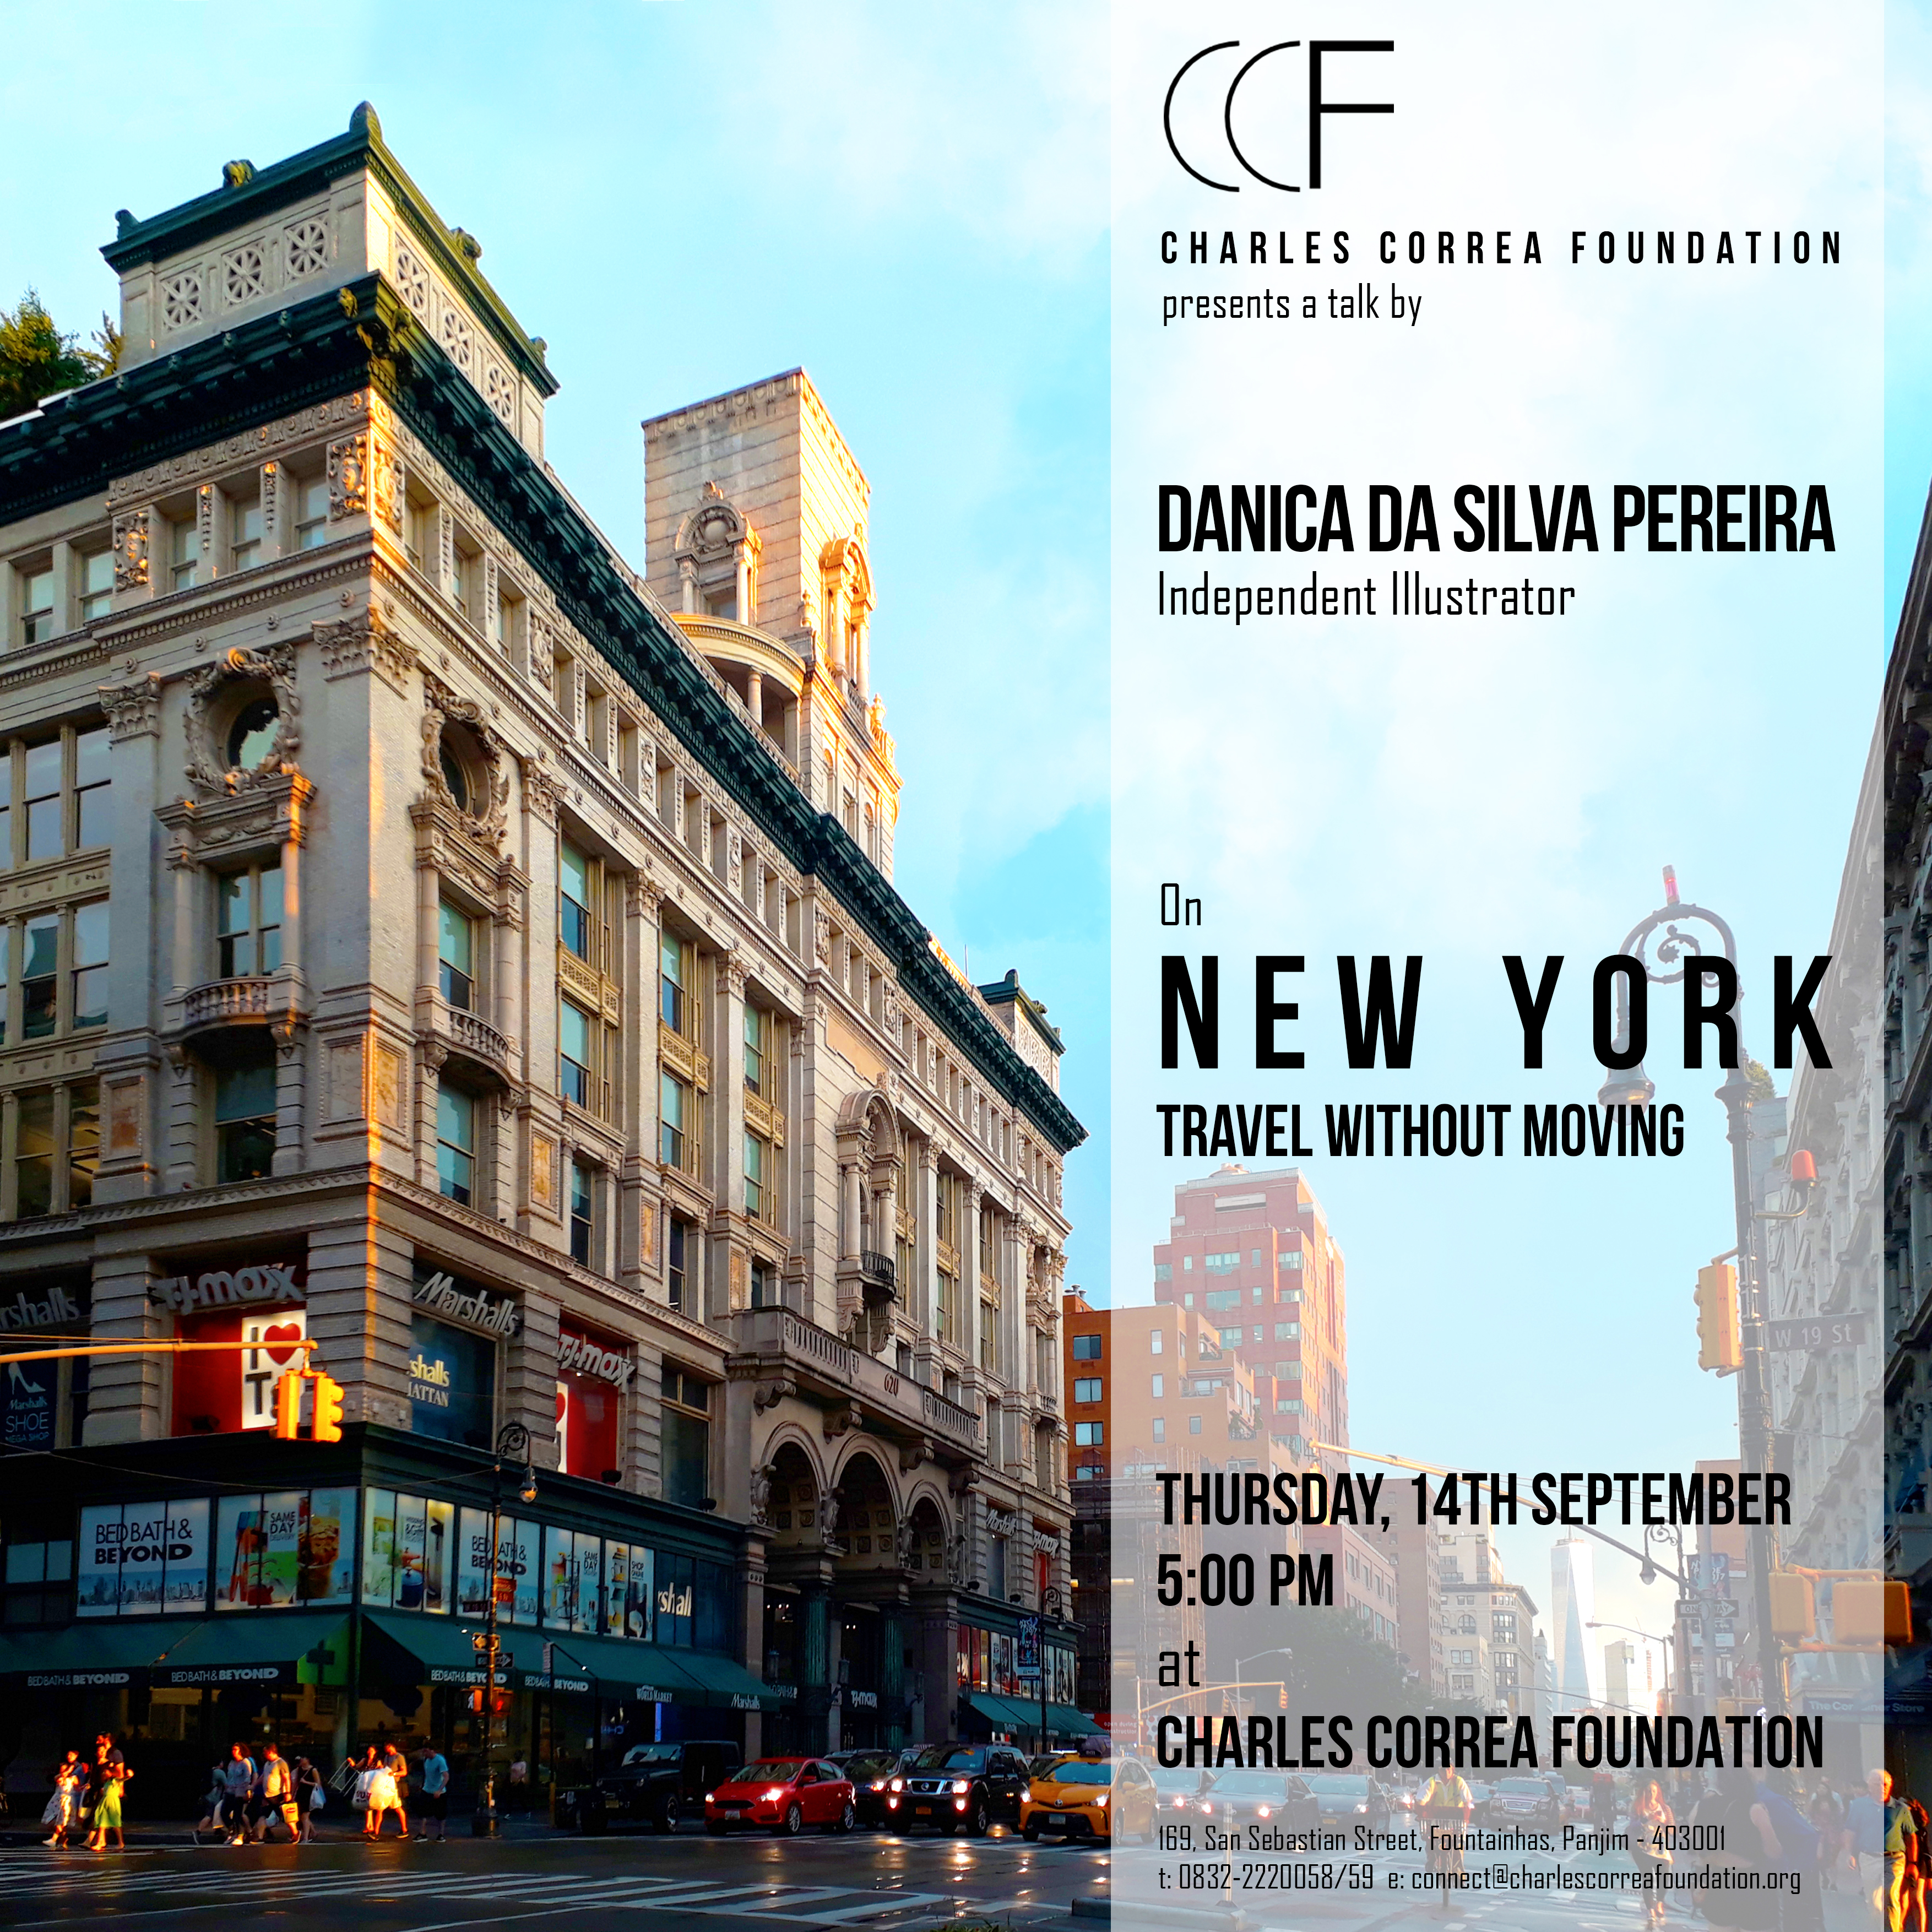 Lecture Series: Charles Correa Foundation